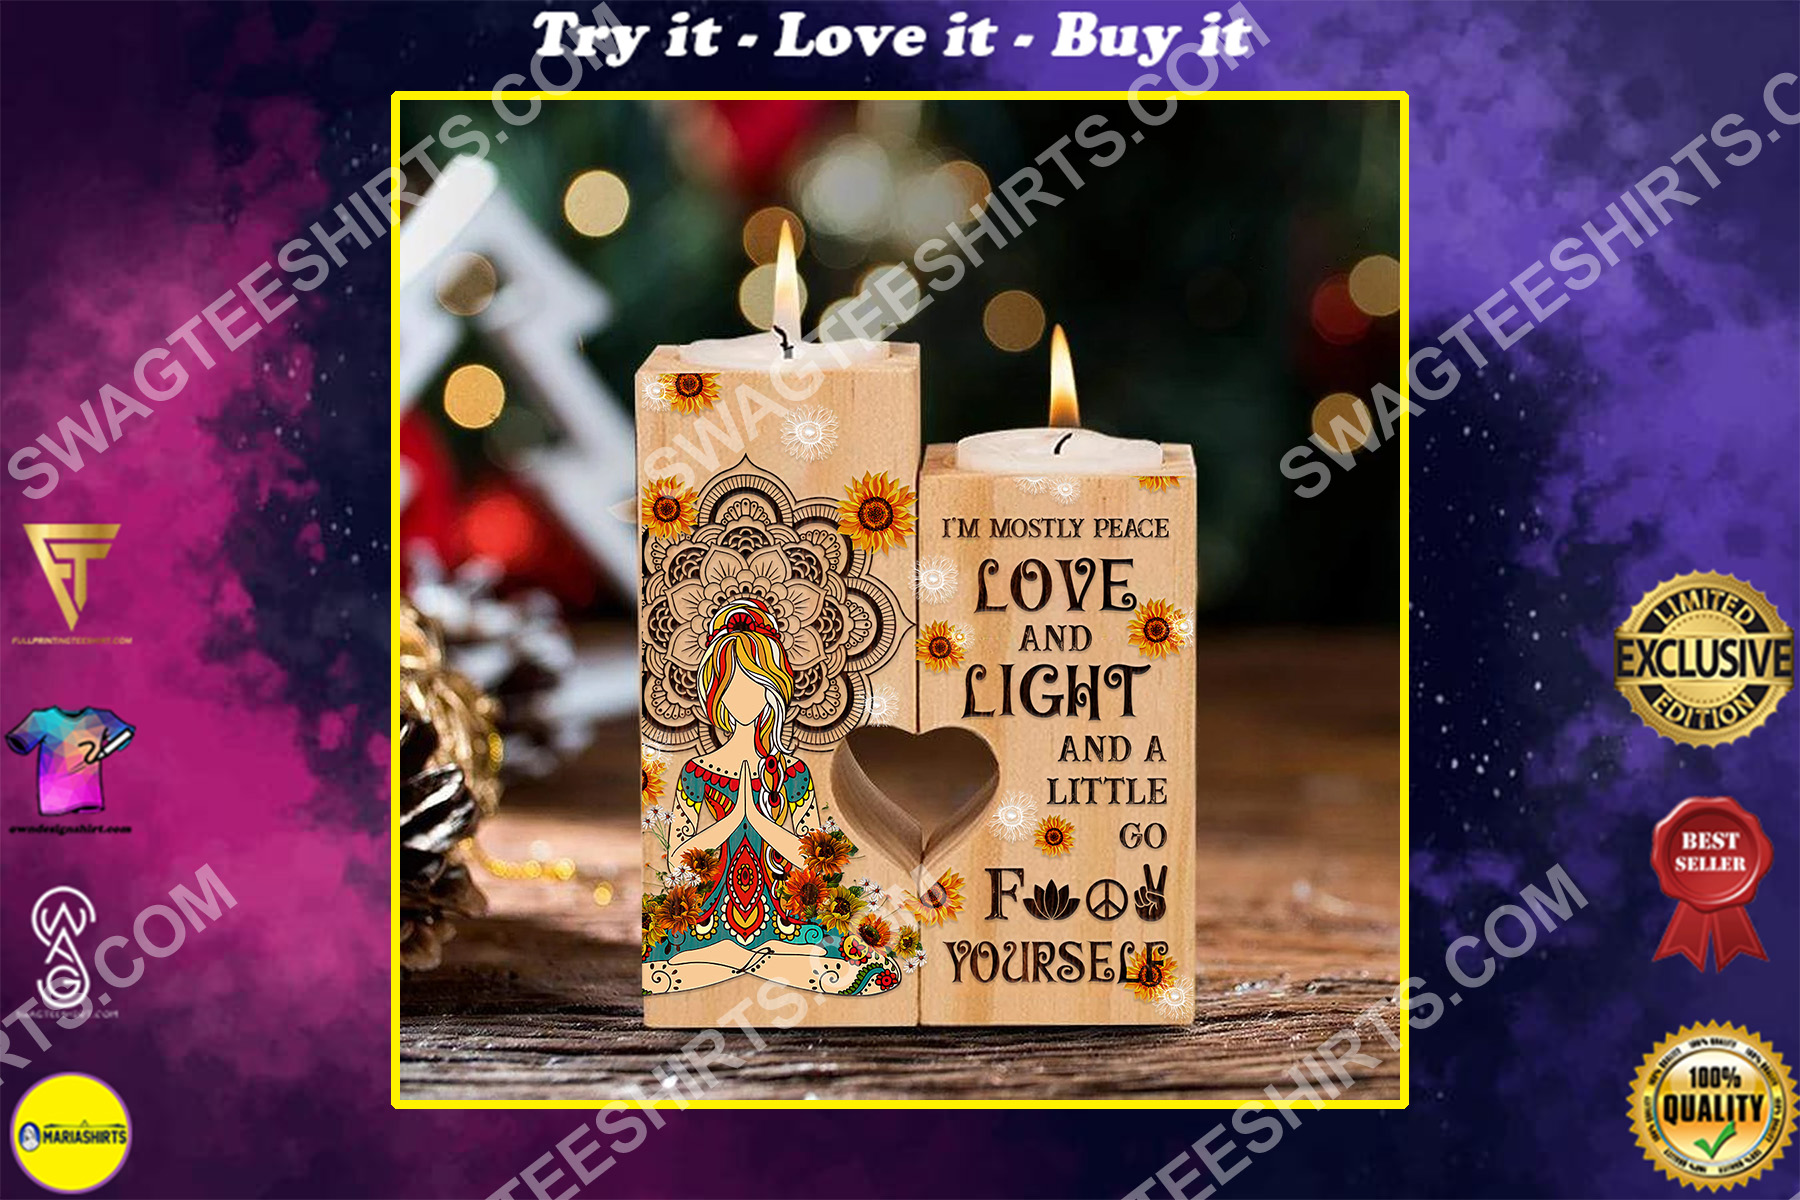 hippie girl yoga im mostly peace love and light candle holder